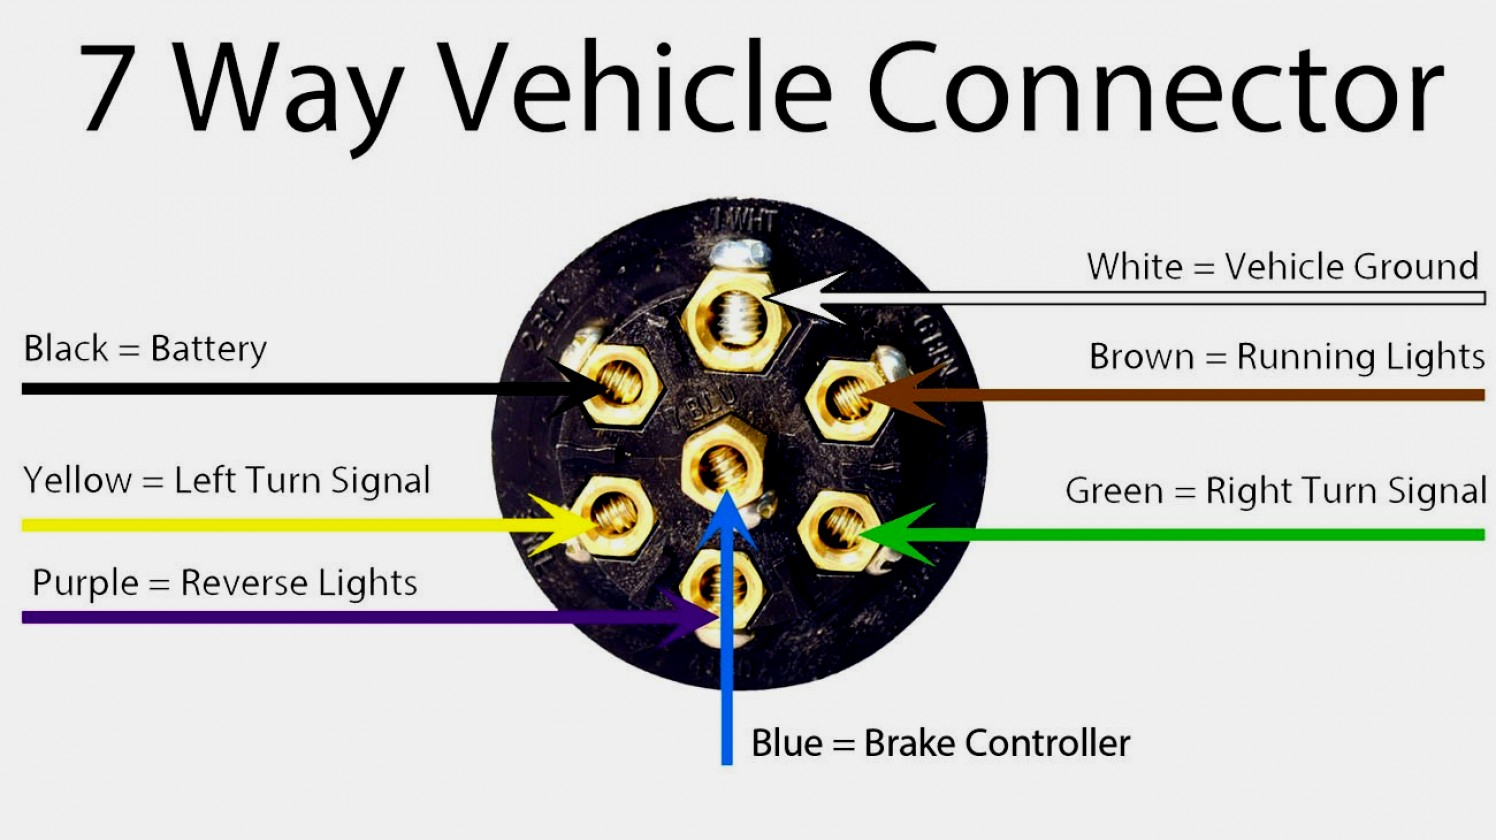 Wiring Diagram For Trailer Lights South Africa - Wiring Diagrams Img - Trailer Plug Wiring Diagram 7 Way South Africa